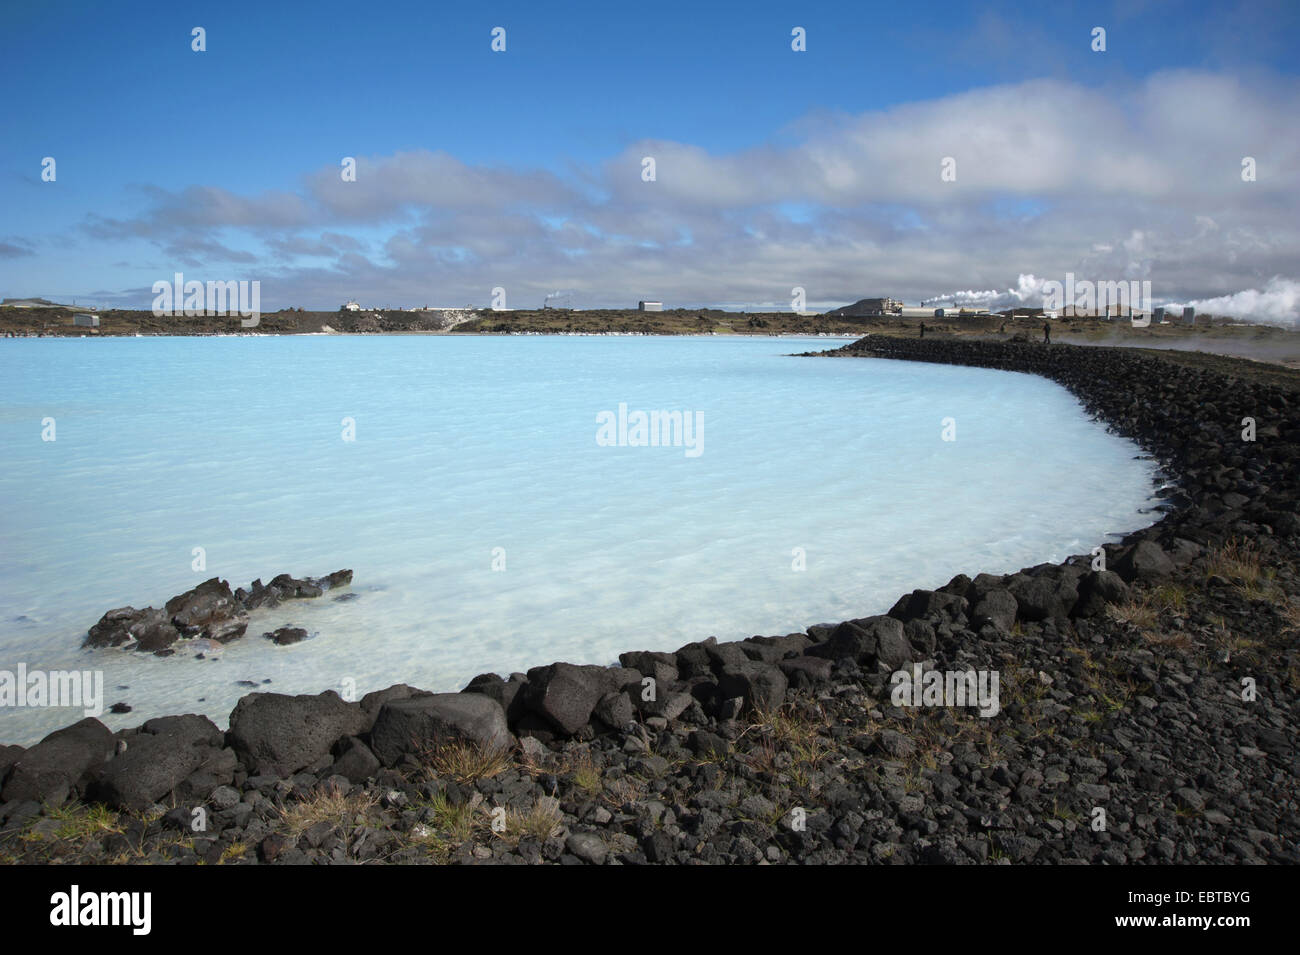 blue shimmering lake in the geothermal area near the volcano Gunnuhver, Iceland, Reykjanes Peninsula - Stock Image